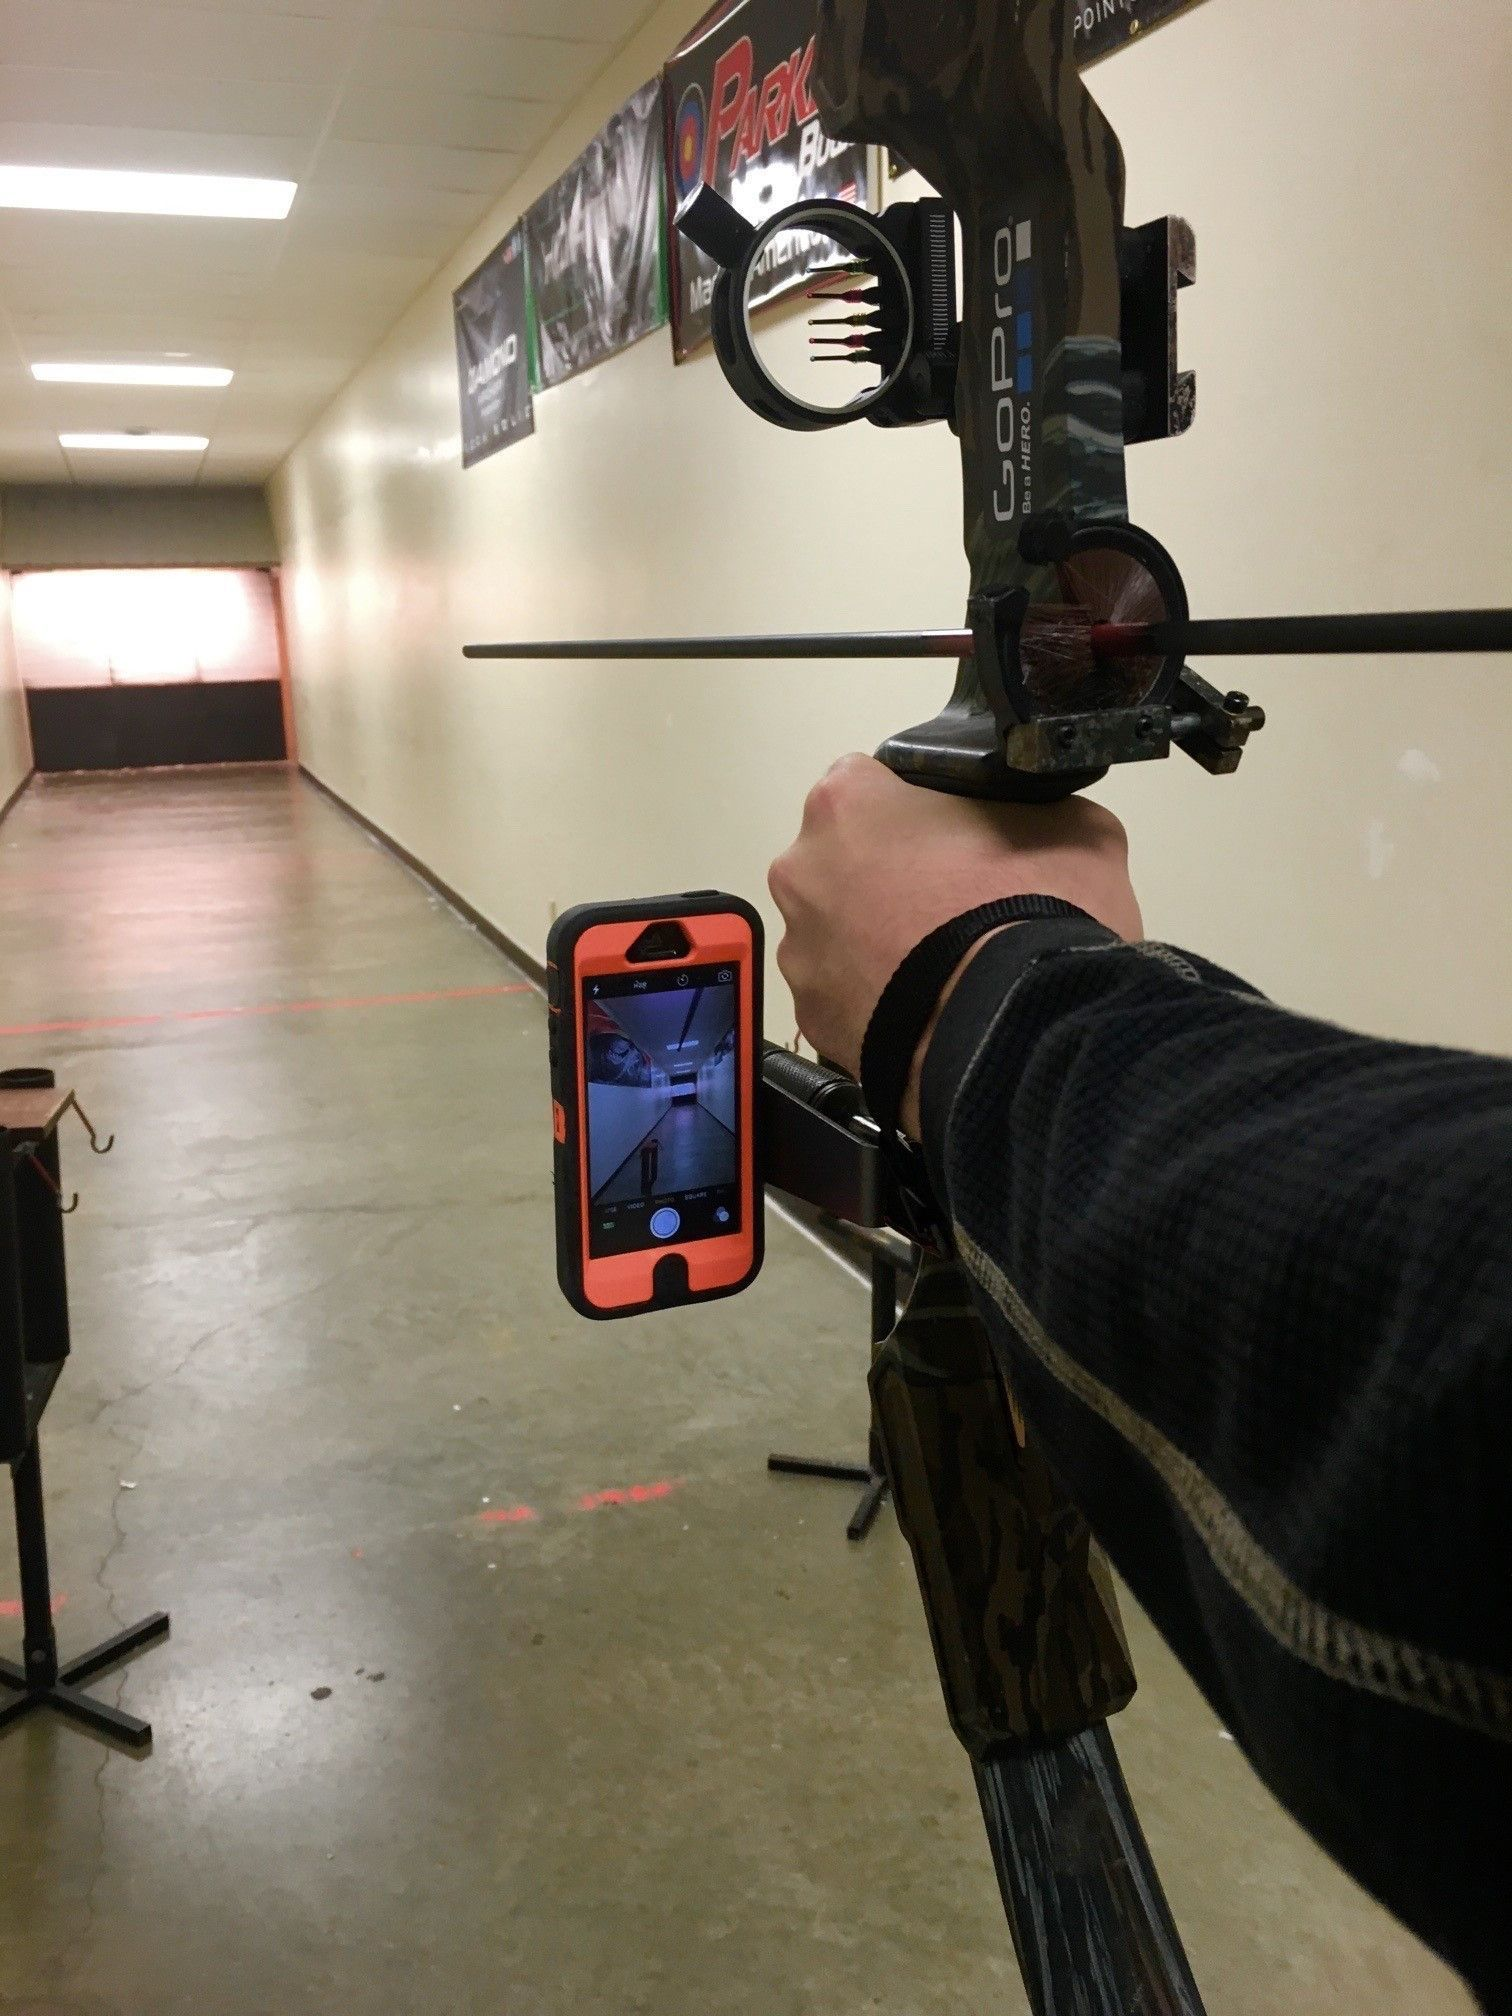 50+ Game camera that will send pictures to your phone information